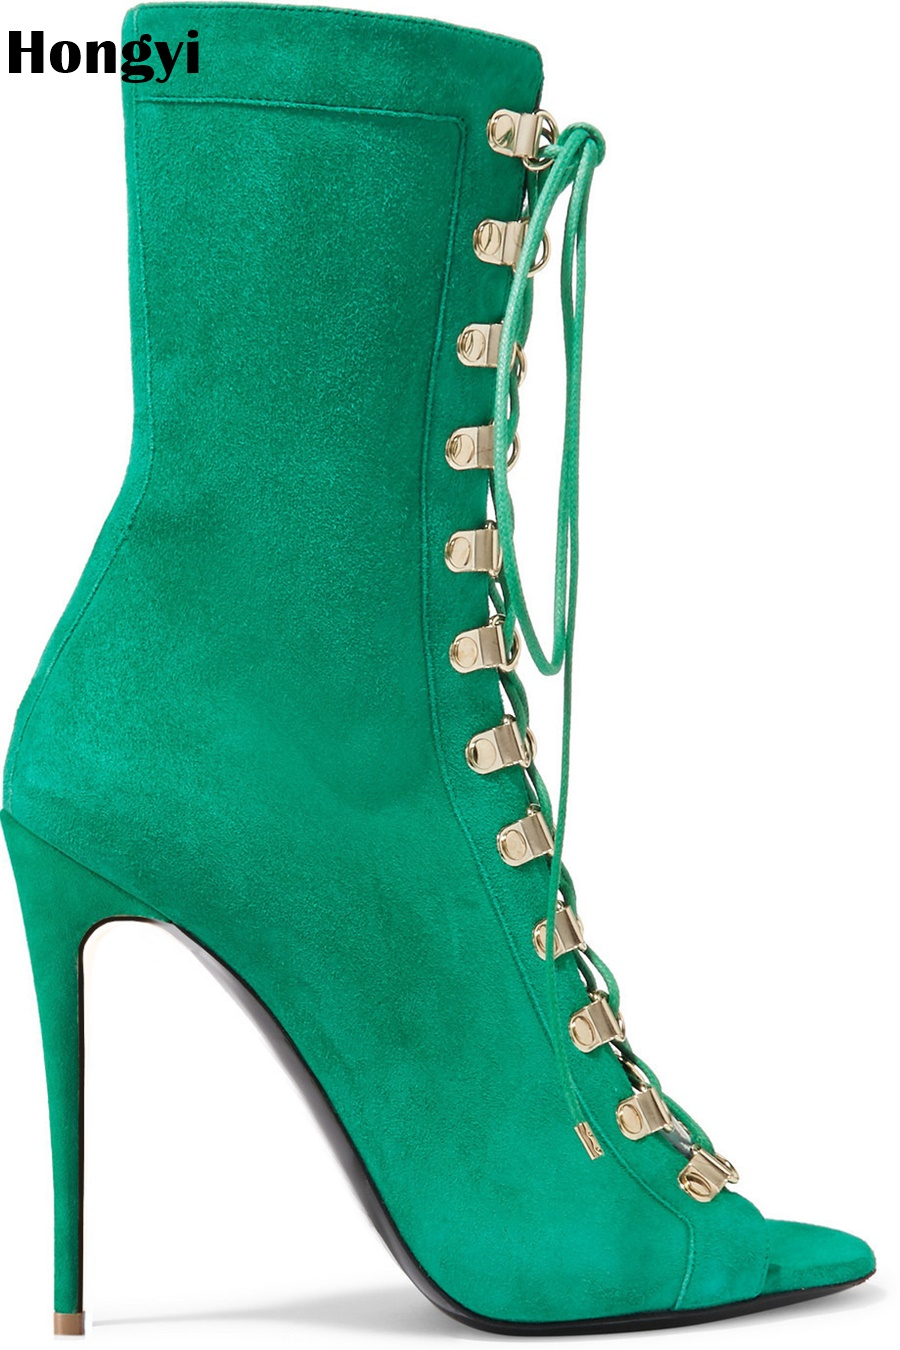 Hongyi New Design Women Suede Lace Up Boots Green Black Open Toe High Heels Shoes Spring Autumn Woman Ankle Boots Size front lace up casual ankle boots autumn vintage brown new booties flat genuine leather suede shoes round toe fall female fashion